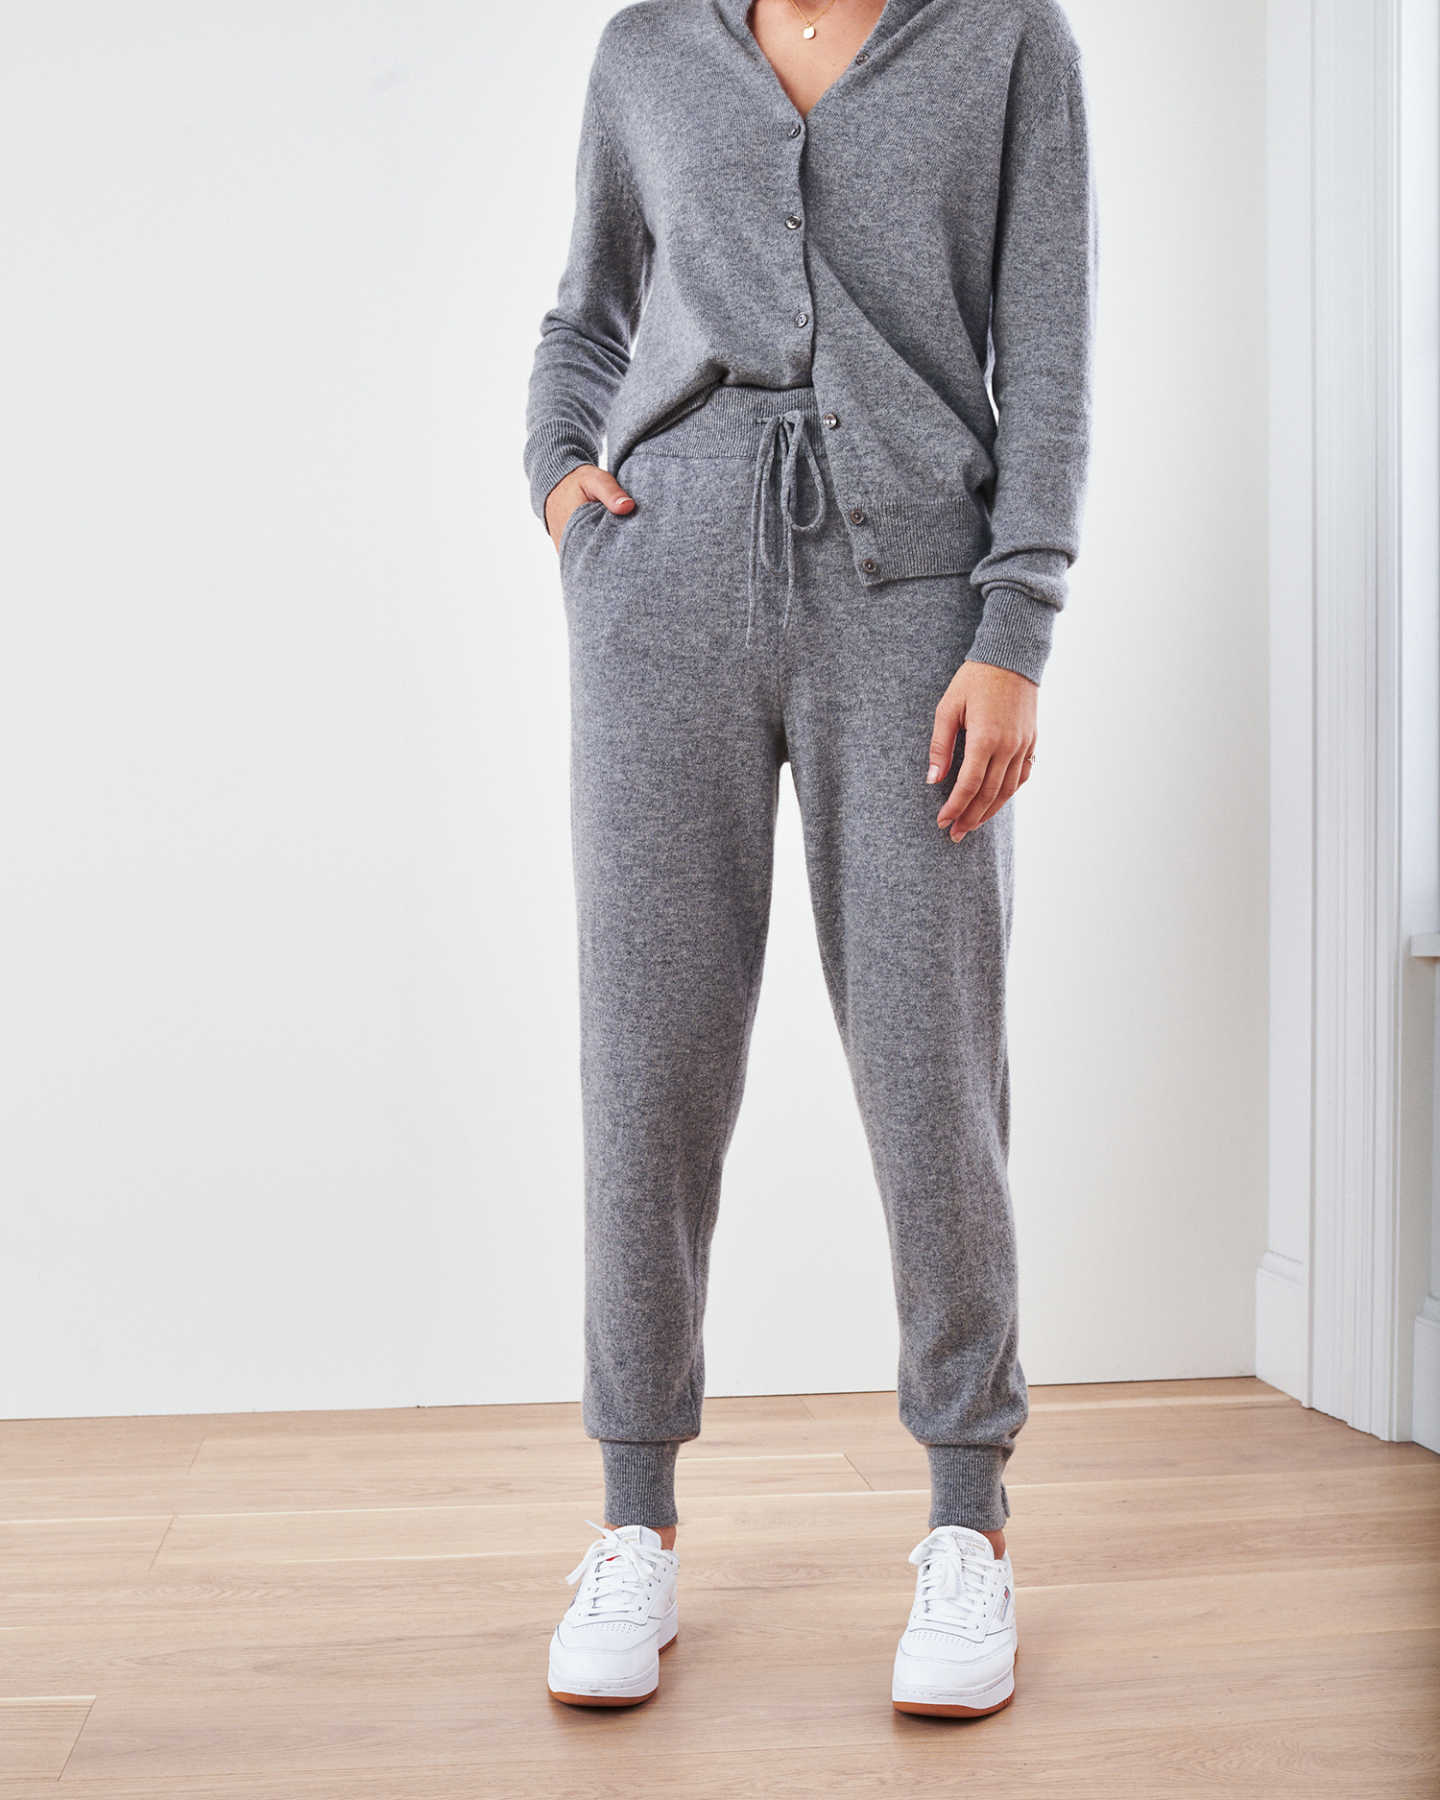 You May Also Like - Mongolian Cashmere Sweatpants - Heather Grey